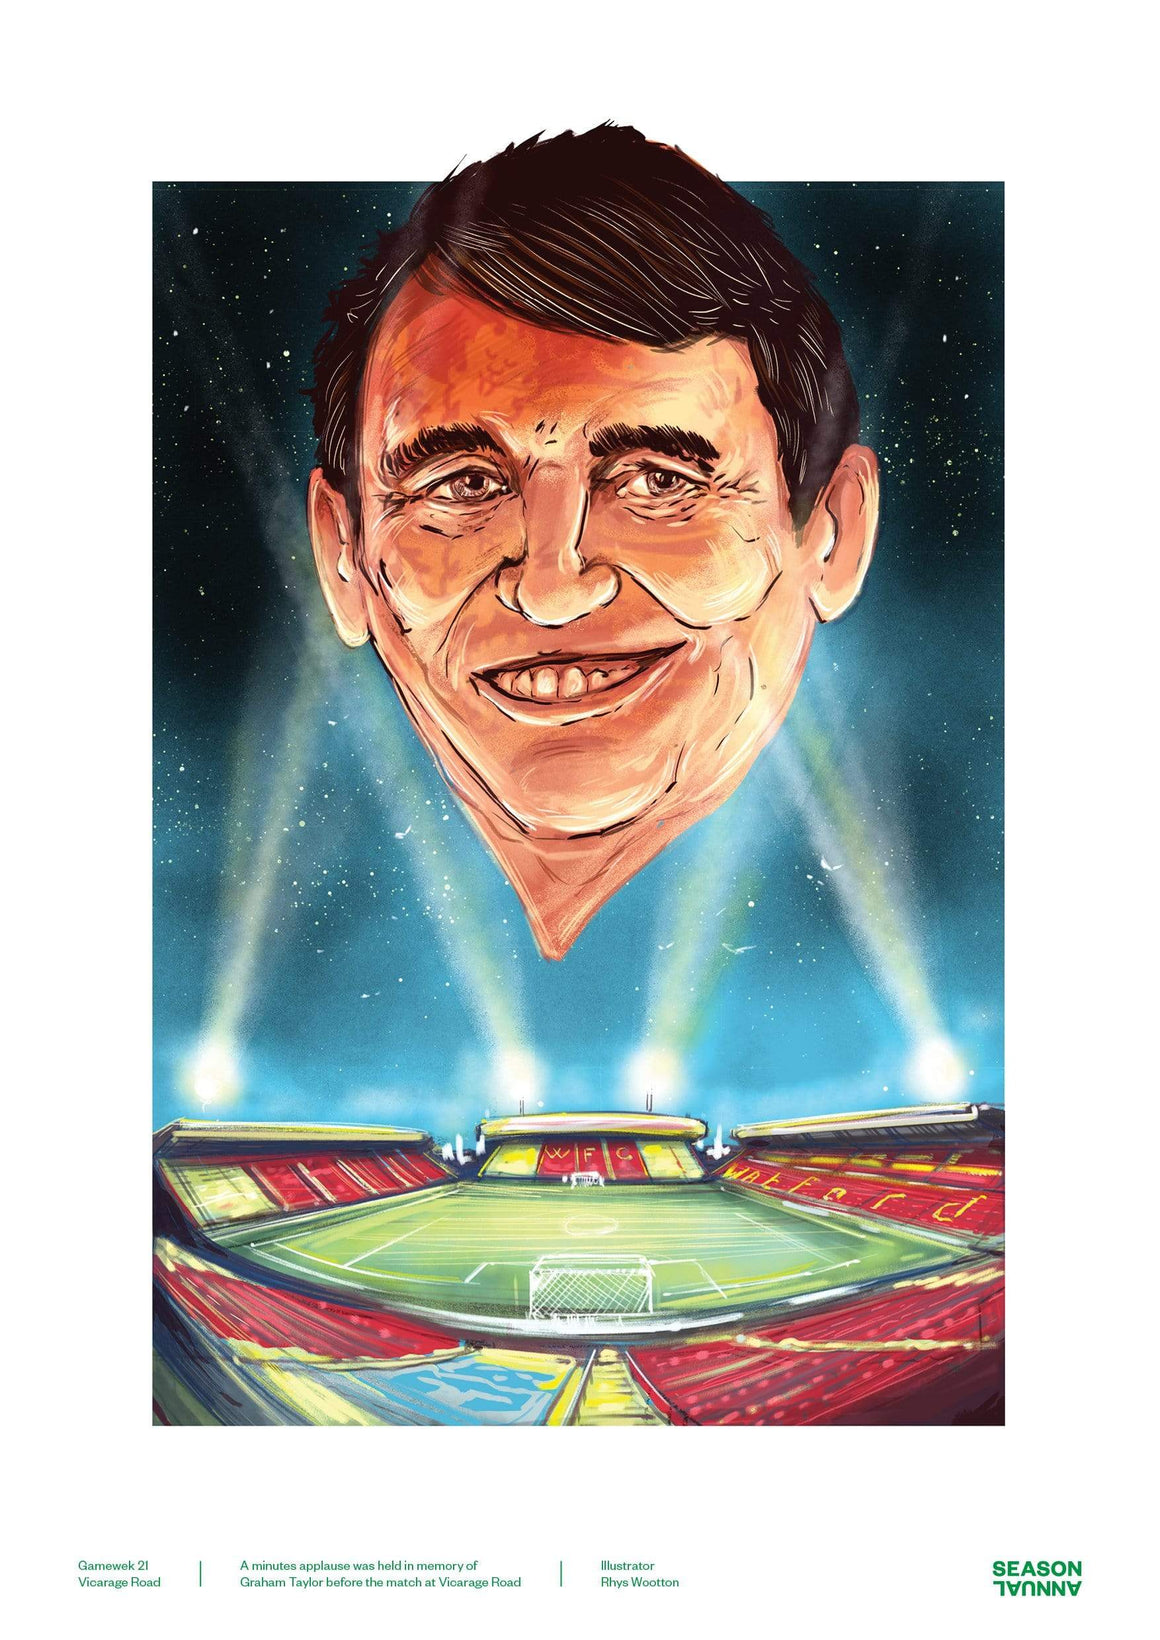 Season Annual A3 poster of the late Watford manager Graham Taylor